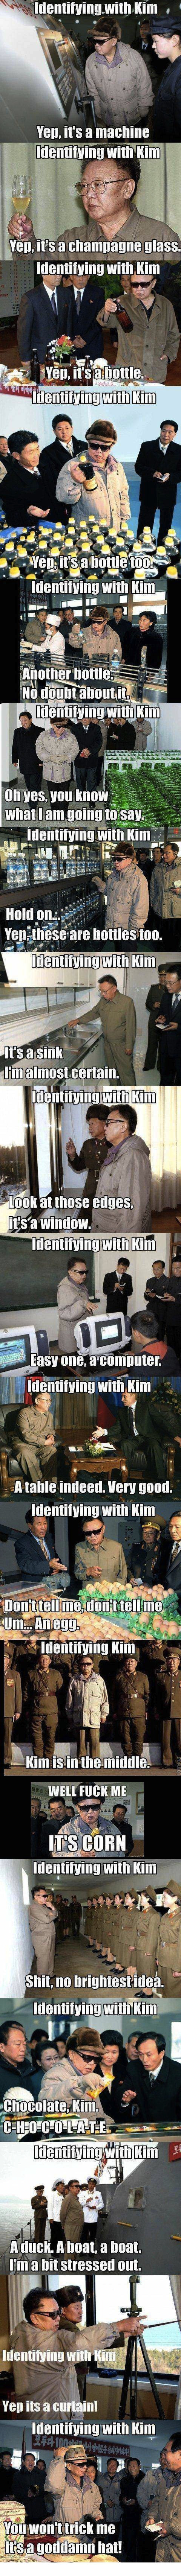 Too soon?. please thumb up..... identifying with kim... yep, op is a thumbwhore